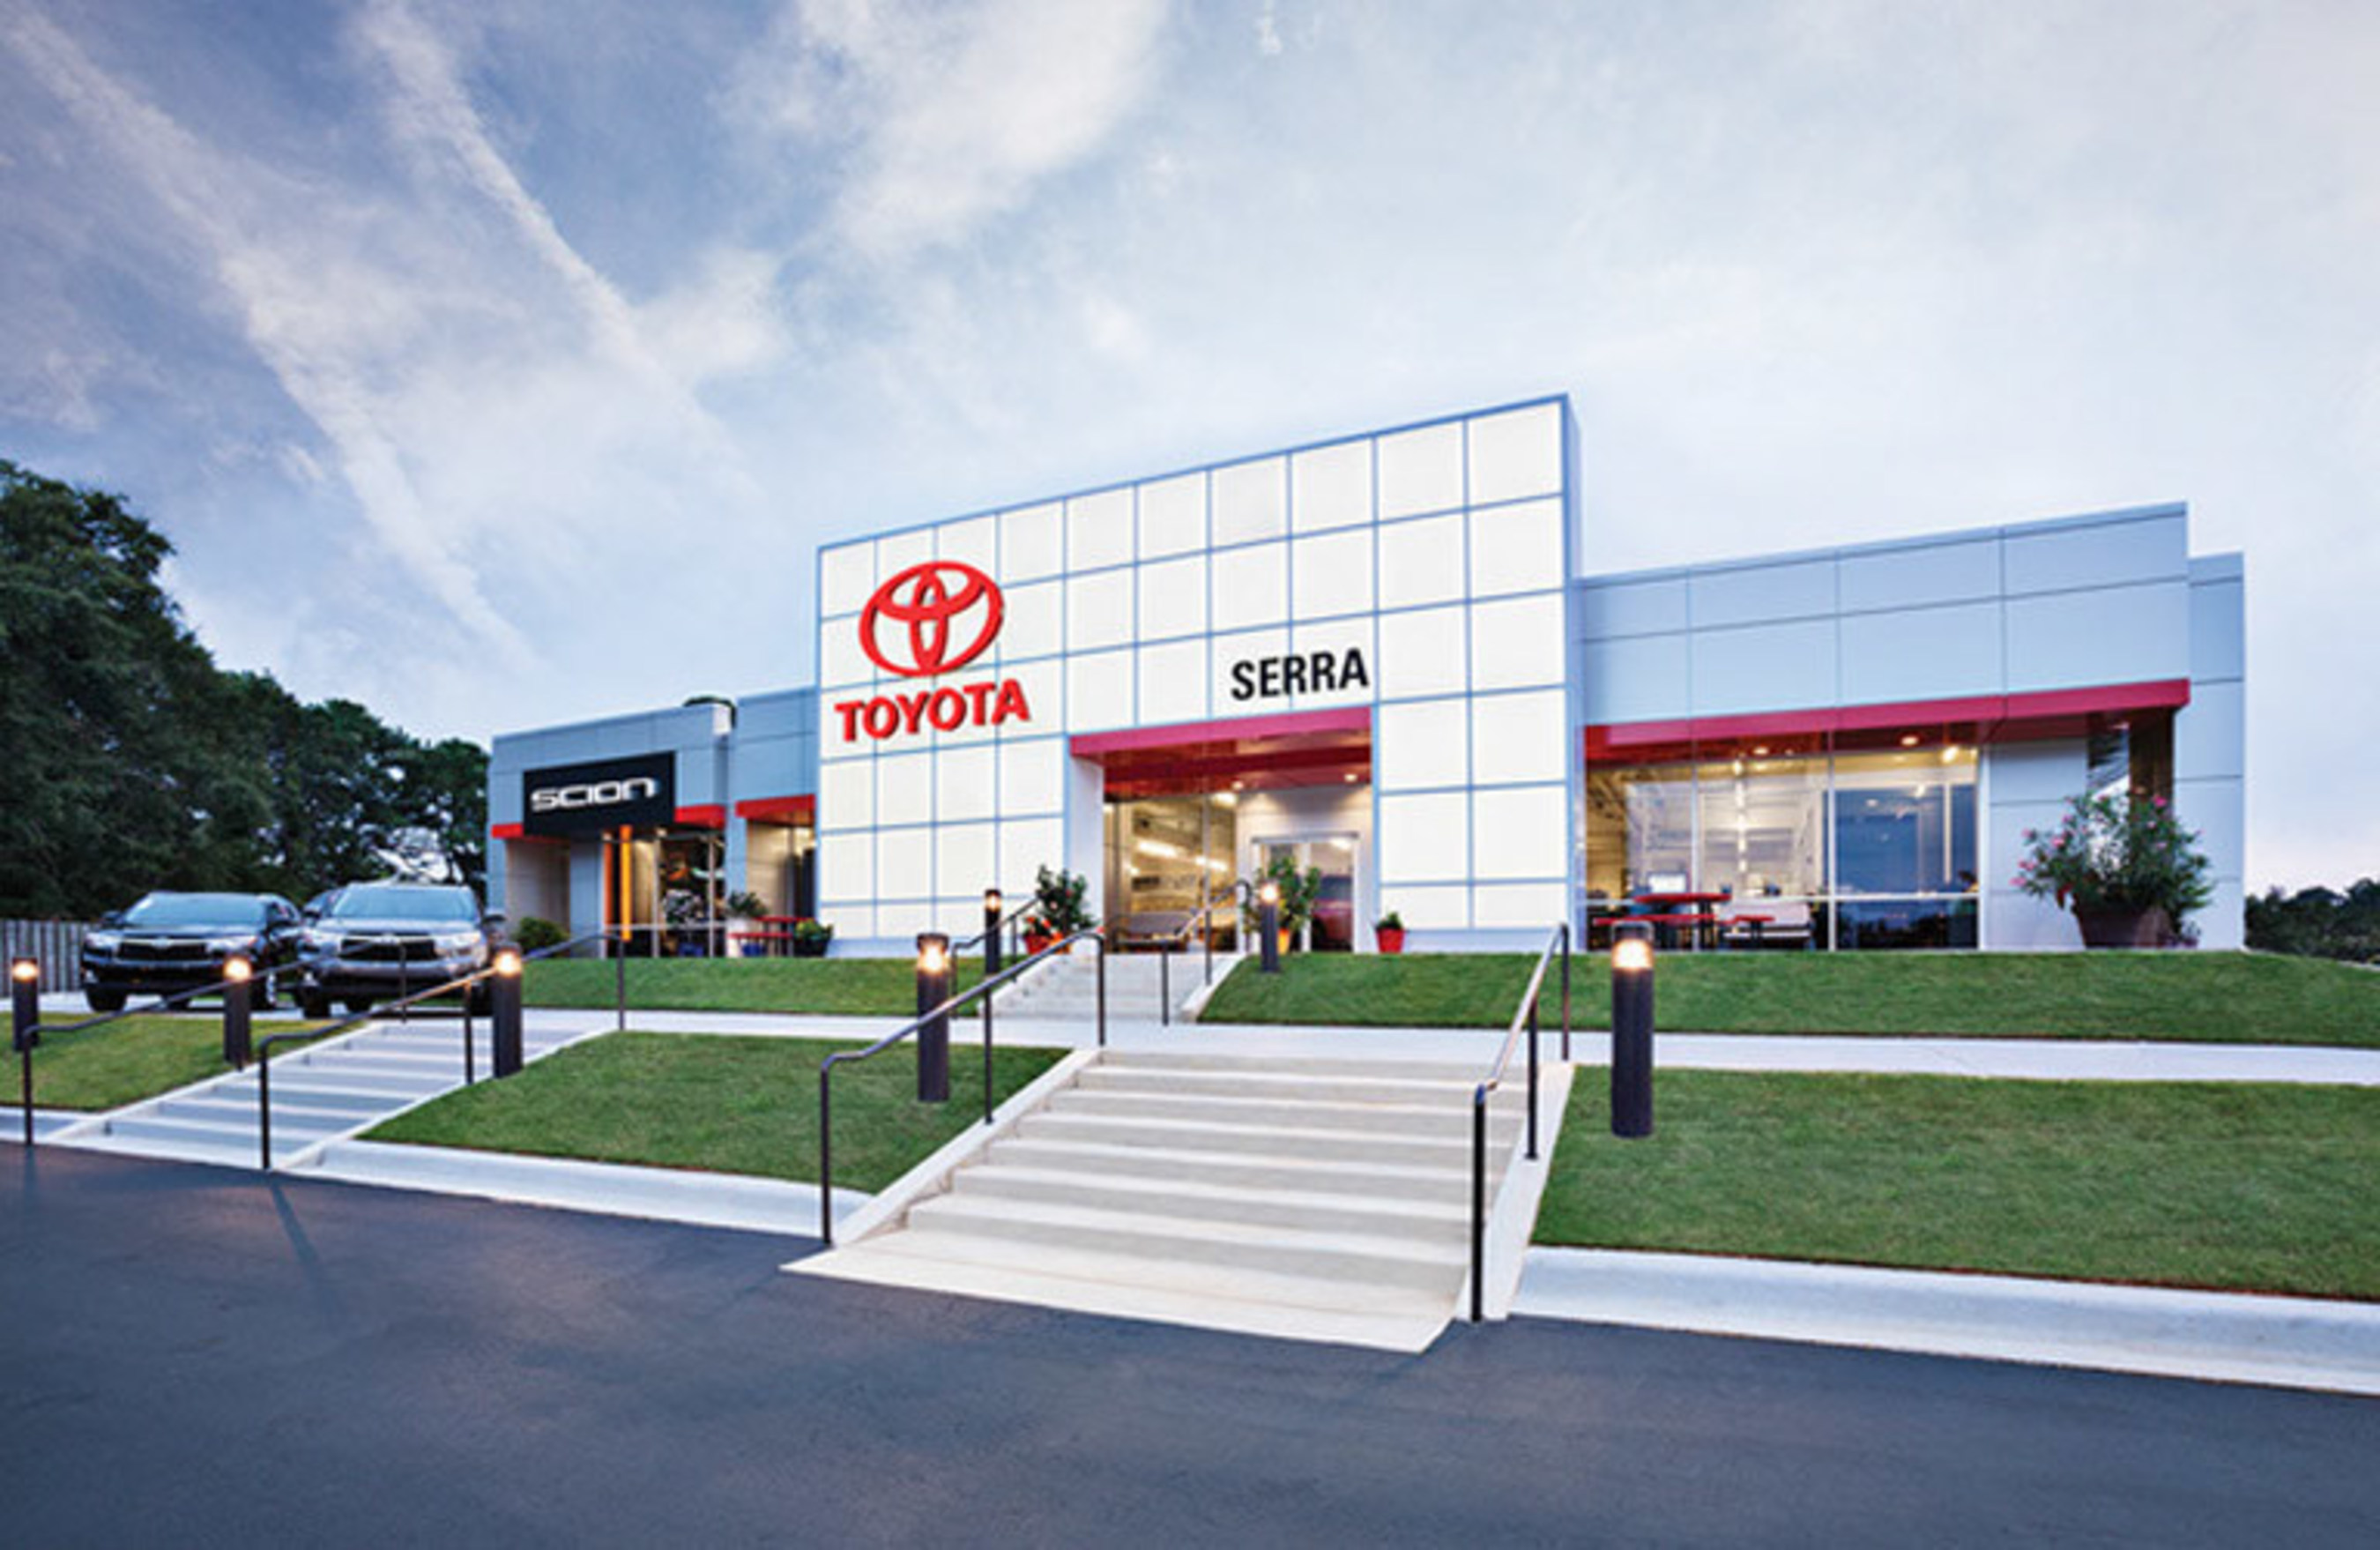 Serra Toyota invites all to attend Grand Opening Ceremony